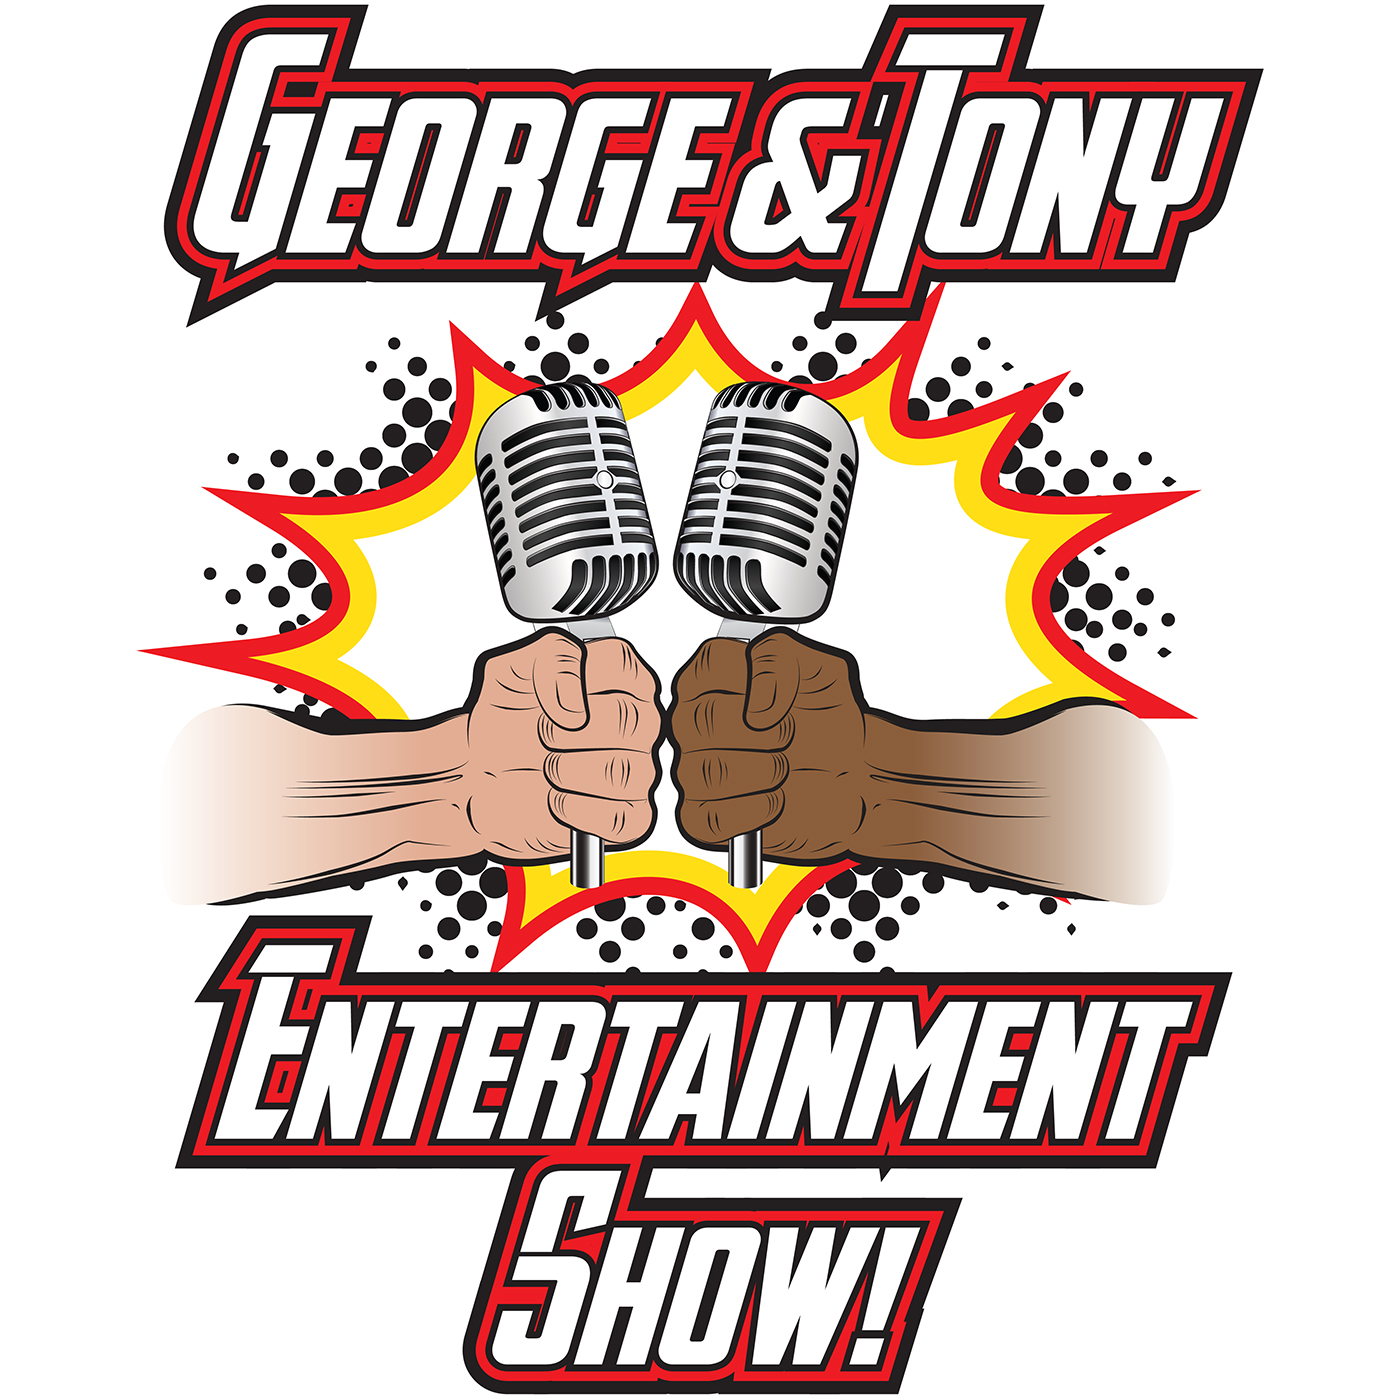 George and Tony Entertainment Show #125